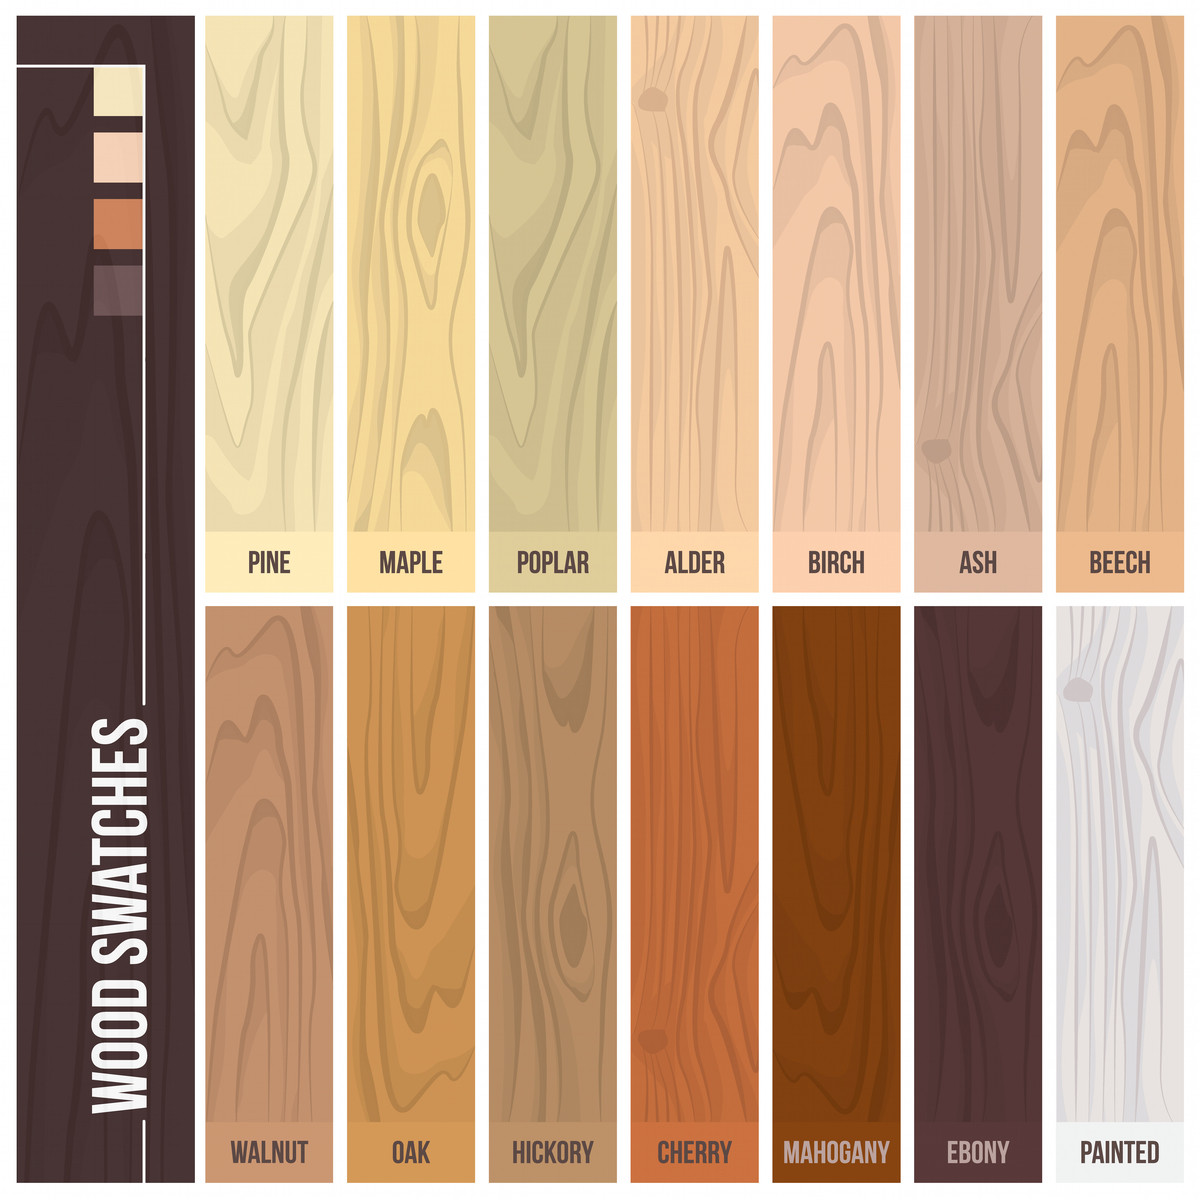 how to install hardwood flooring on concrete subfloor of 12 types of hardwood flooring species styles edging dimensions within types of hardwood flooring illustrated guide